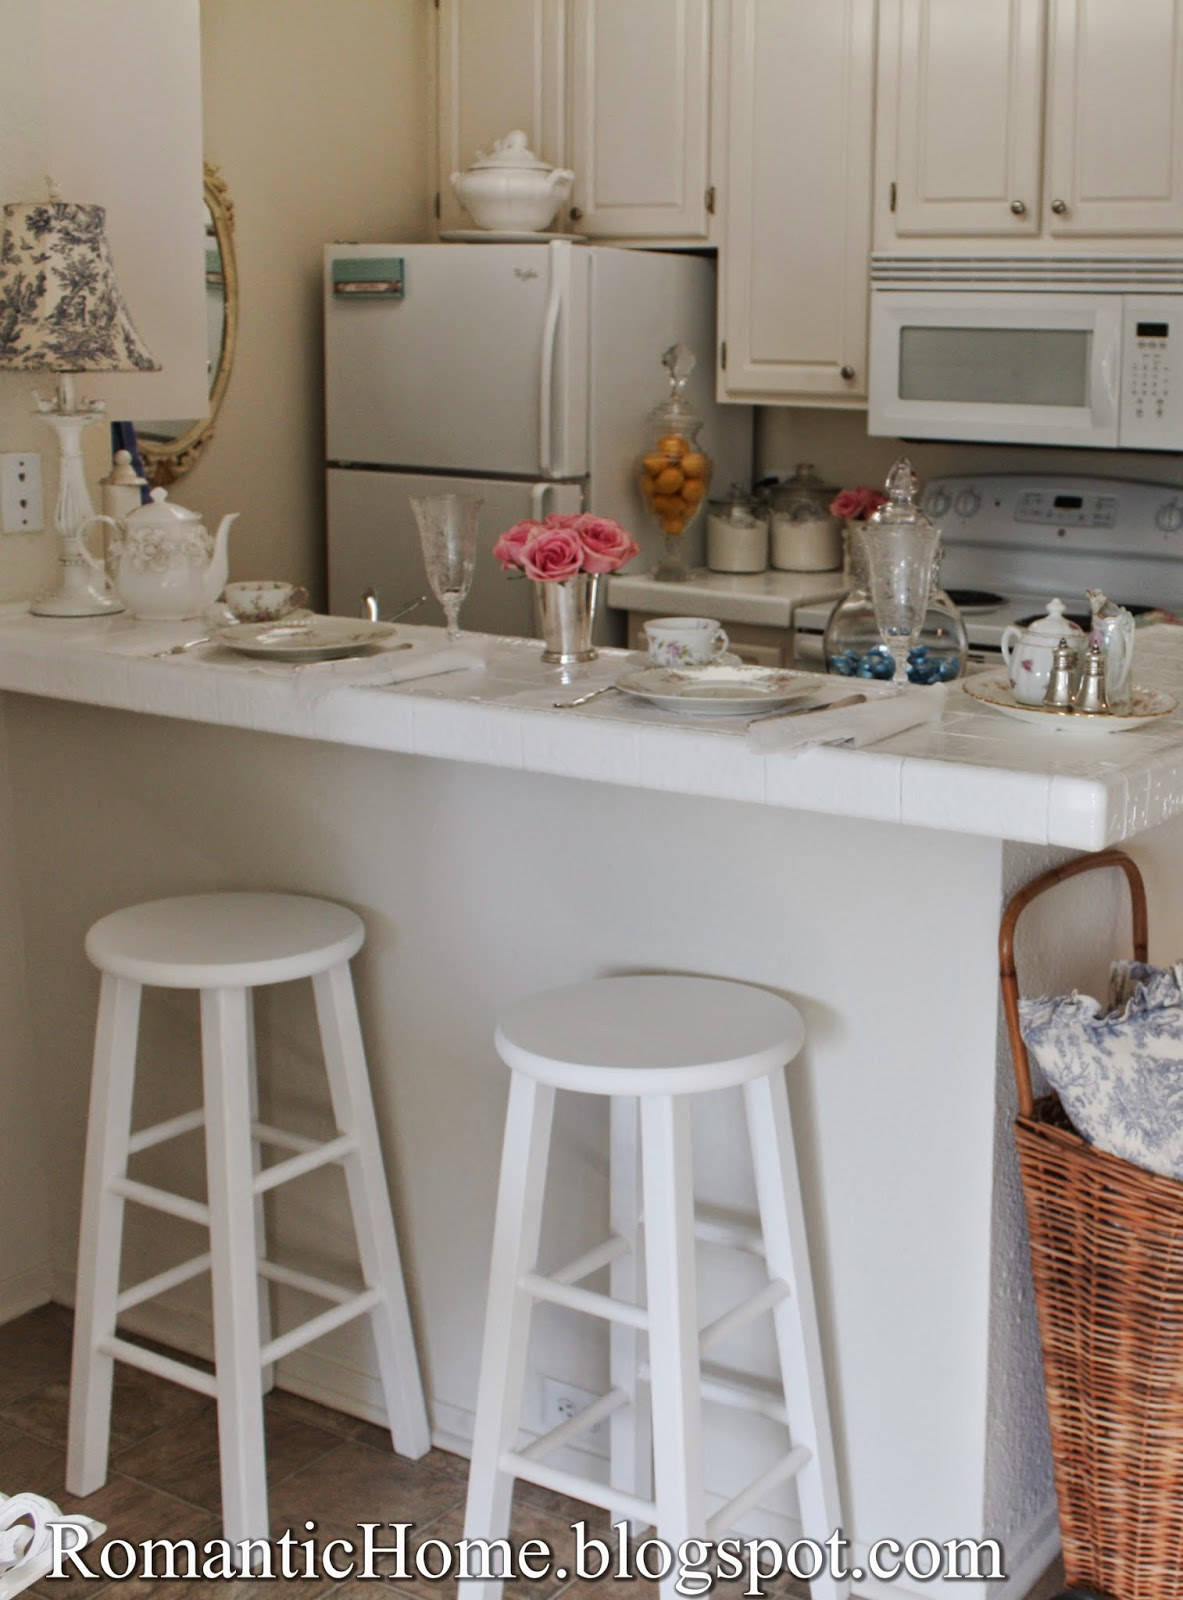 Kitchen Bar Stools Chalk Painted Show And Tell Friday